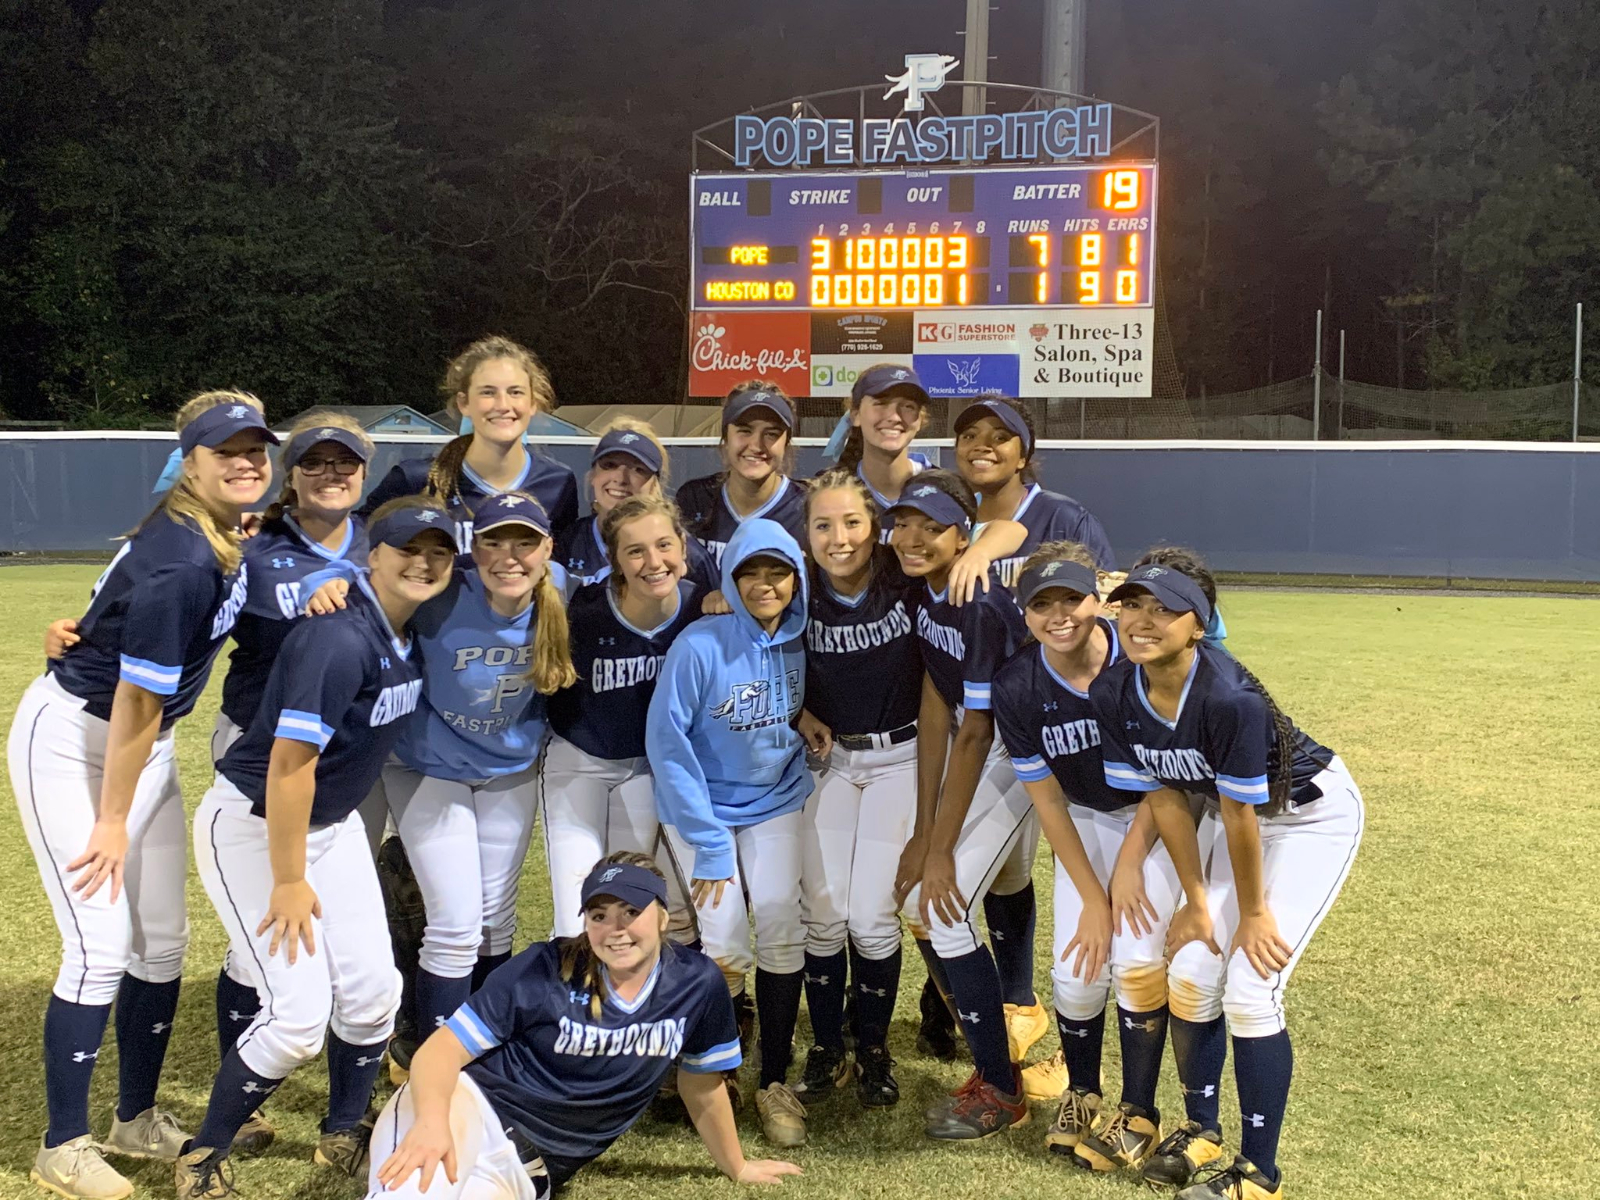 Pope Fastpitch Tryout Dates announced